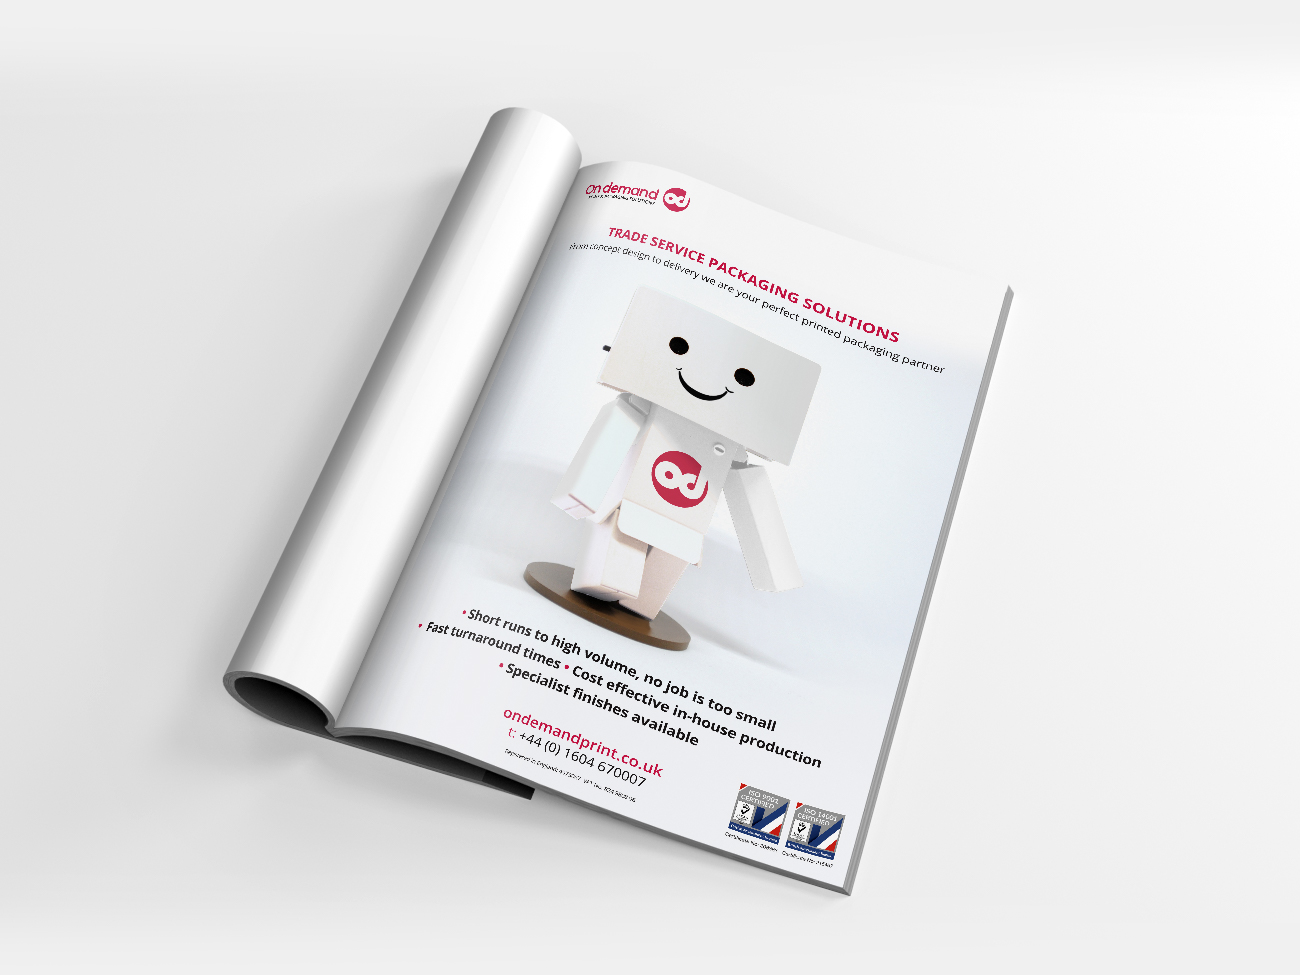 Image of a magazine showing the advert design